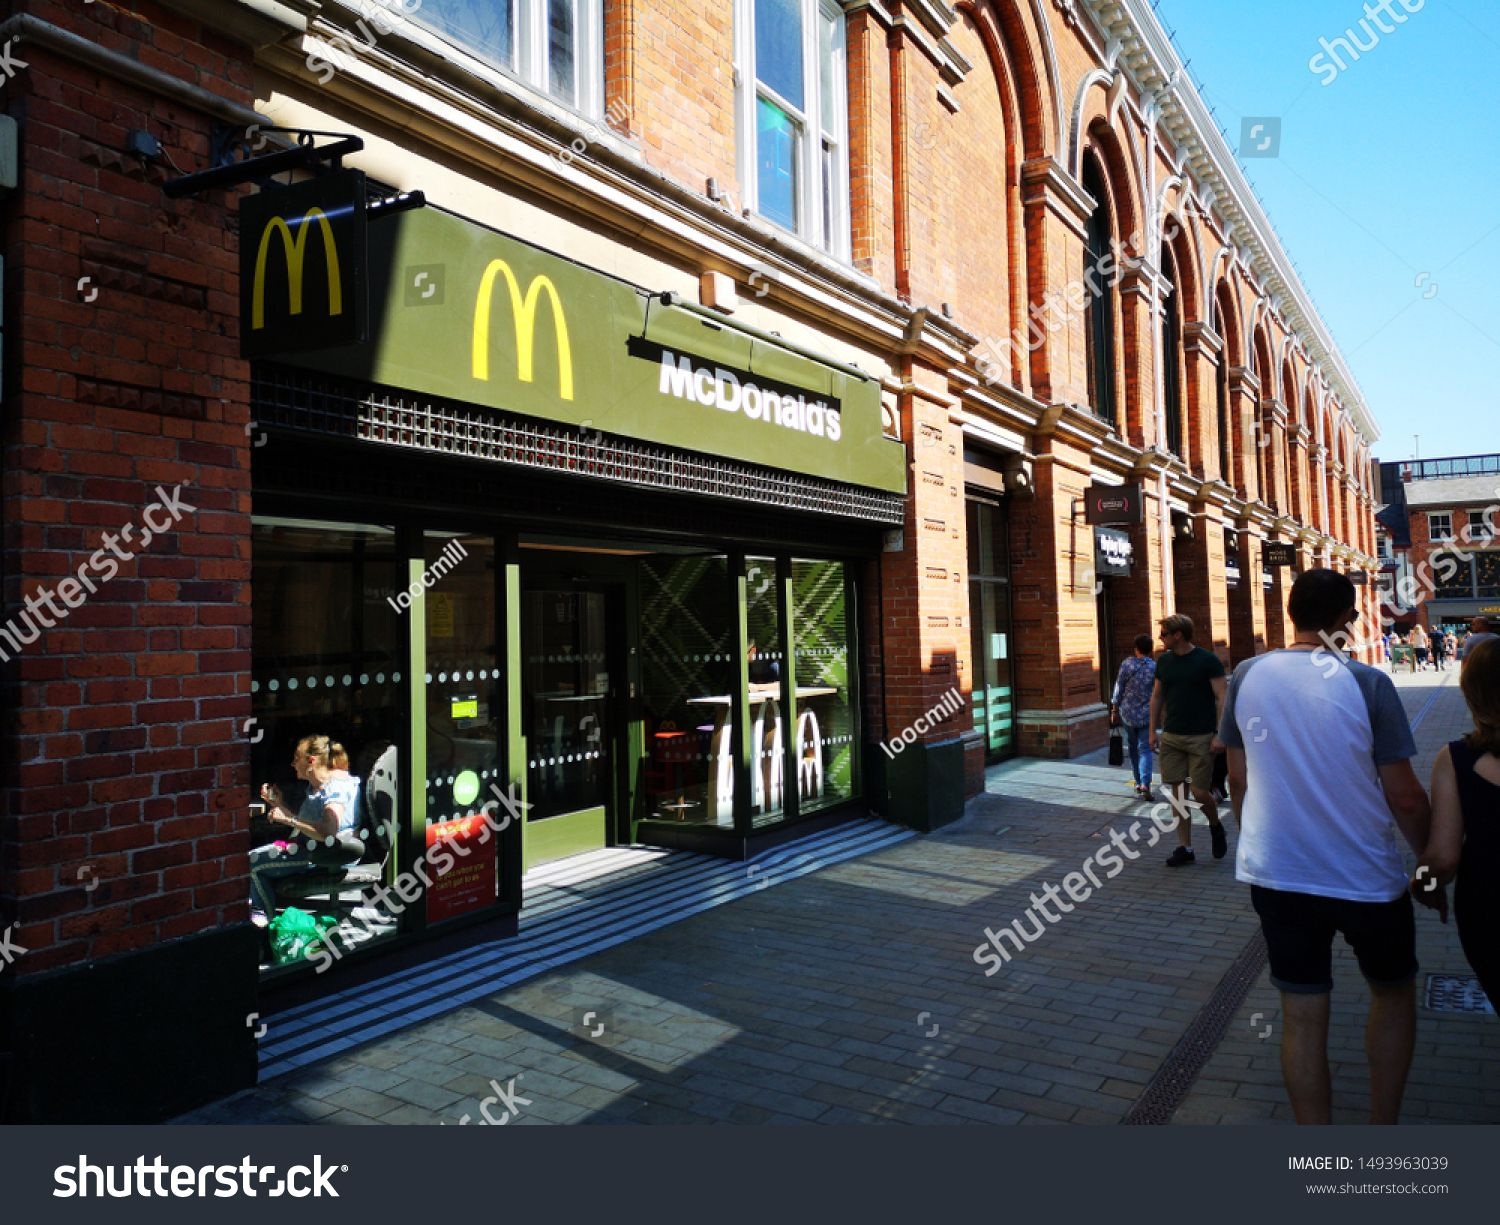 LINCOLN, UNITED KINGDOM, 25th August, 2019: Outside view of the McDonalds fast food restaurant in Lincoln serving burgers, fries and drinks to hungry customers #Sponsored , #Aff, #view#fast#McDonalds#August